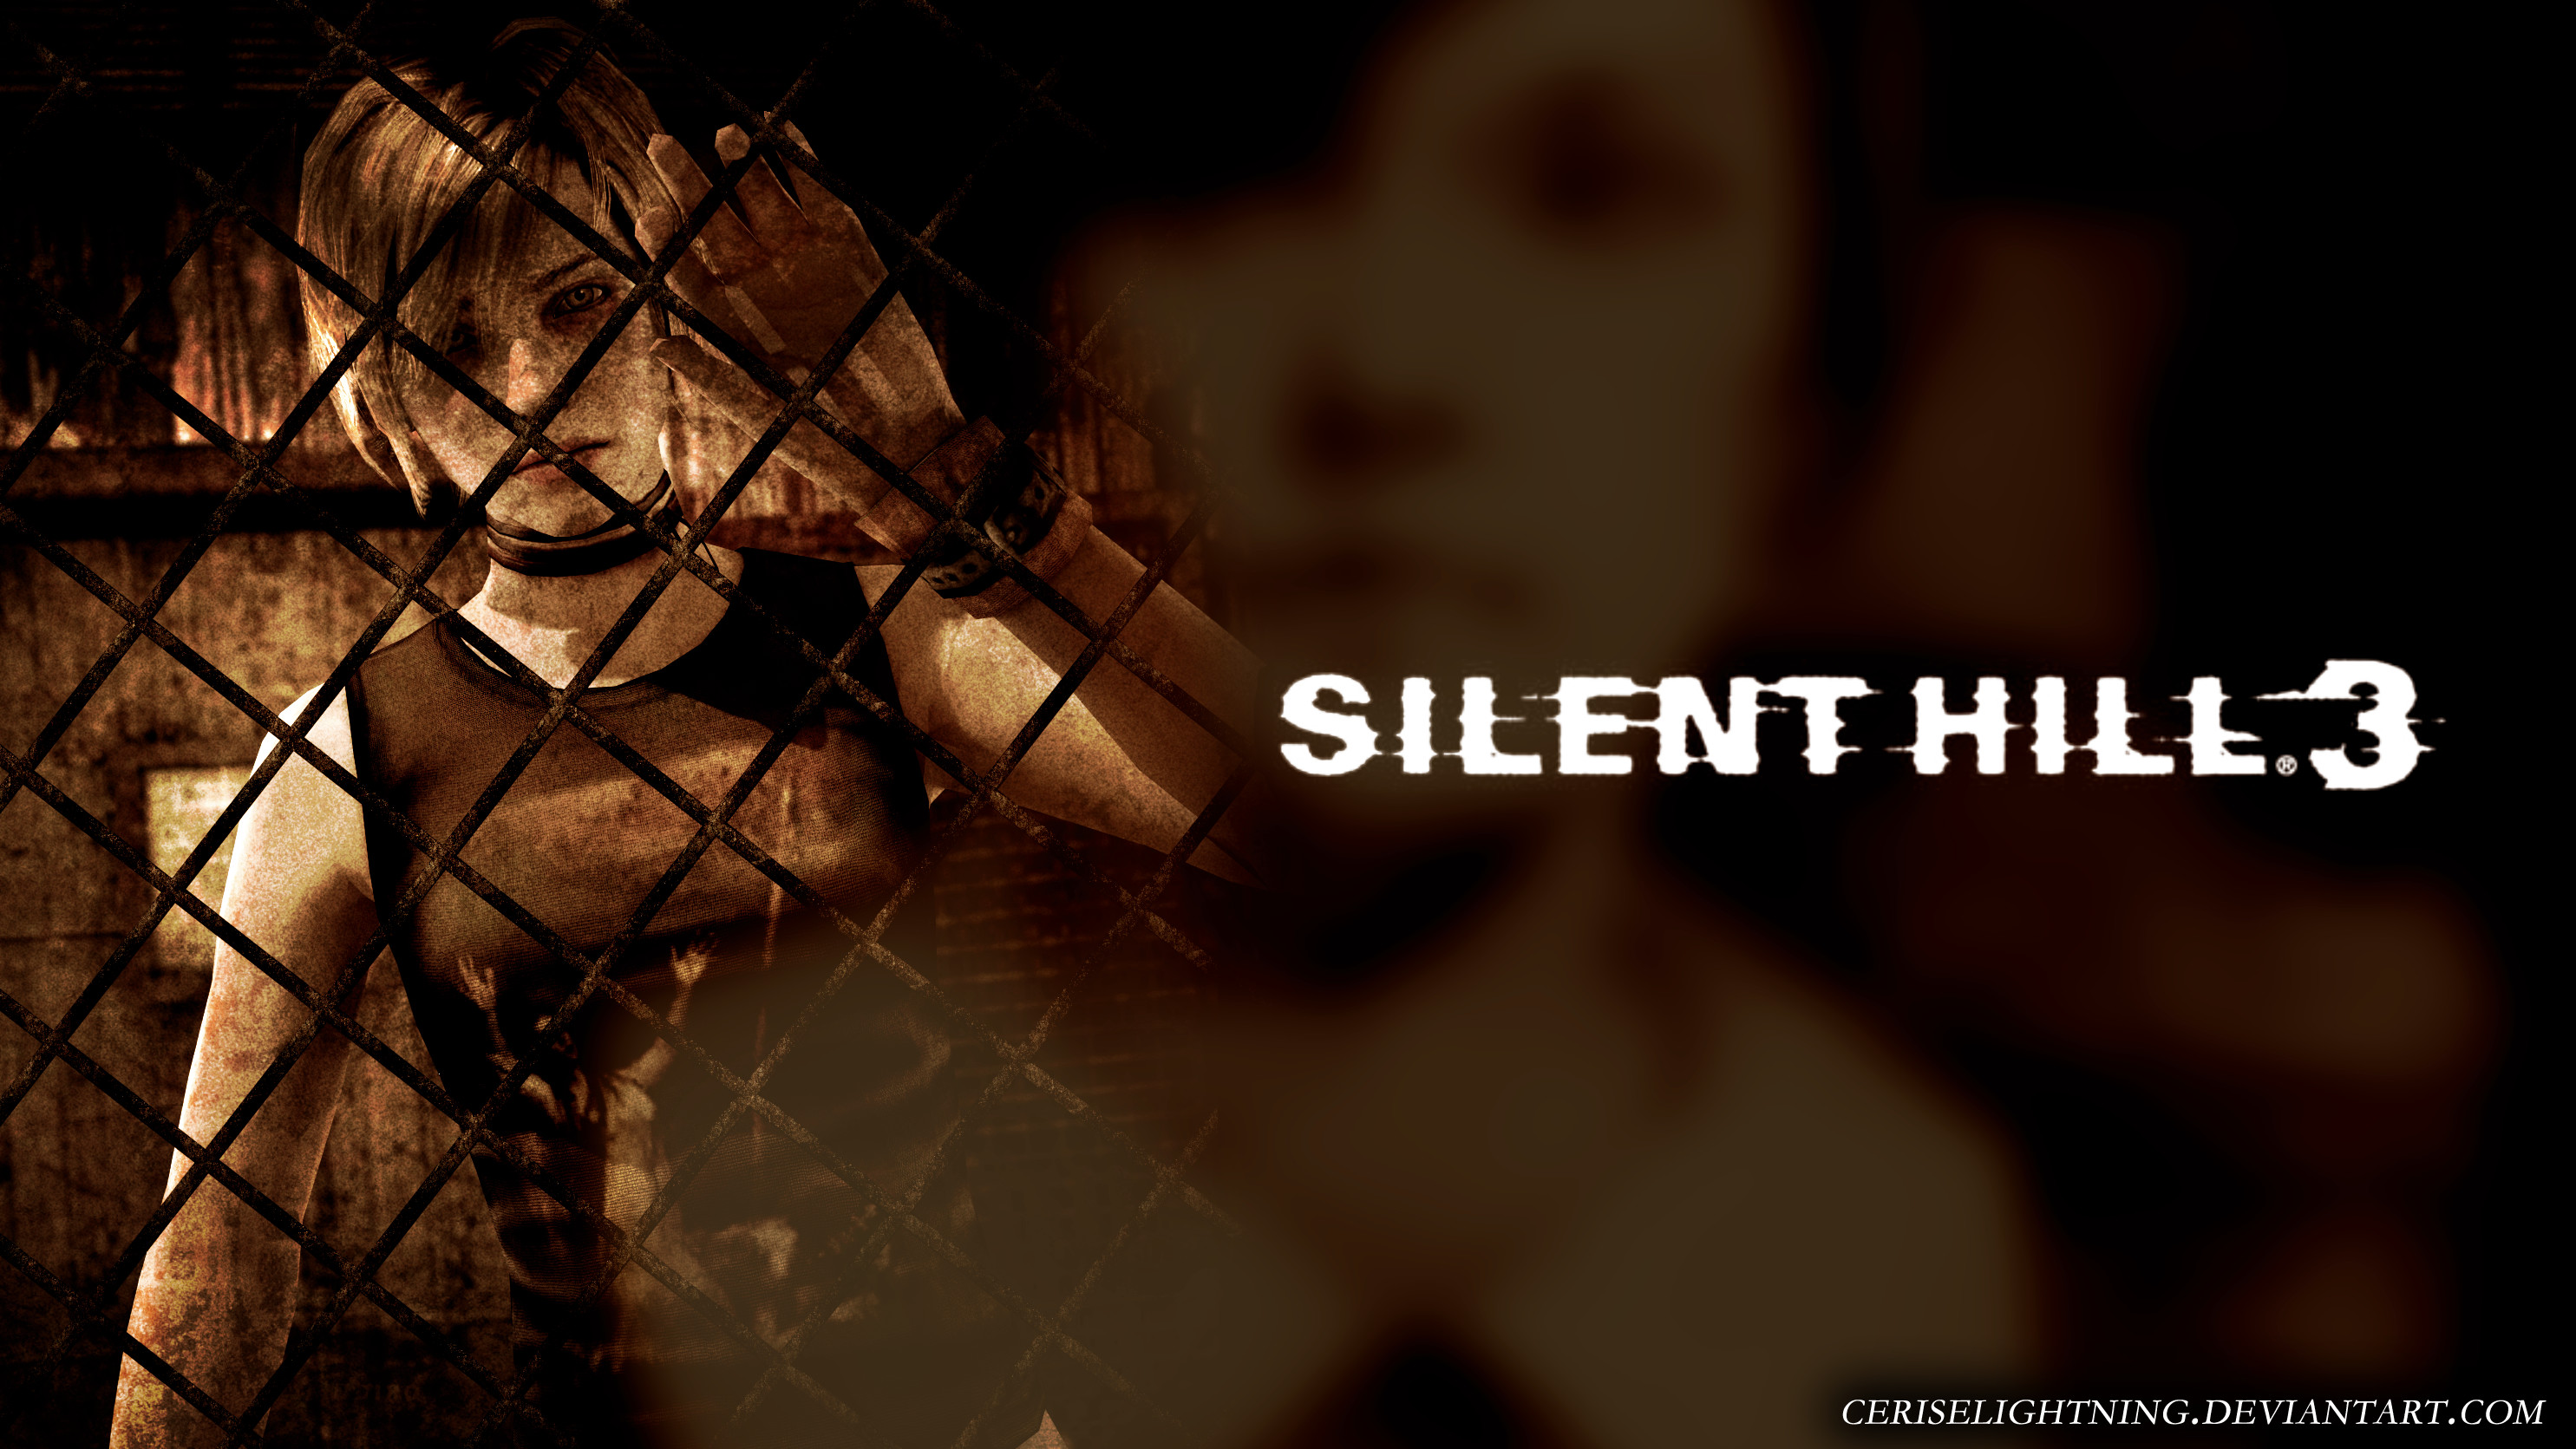 2970x1671 Silent Hill 3 Wallpaper by ceriselightning Silent Hill 3 Wallpaper by  ceriselightning